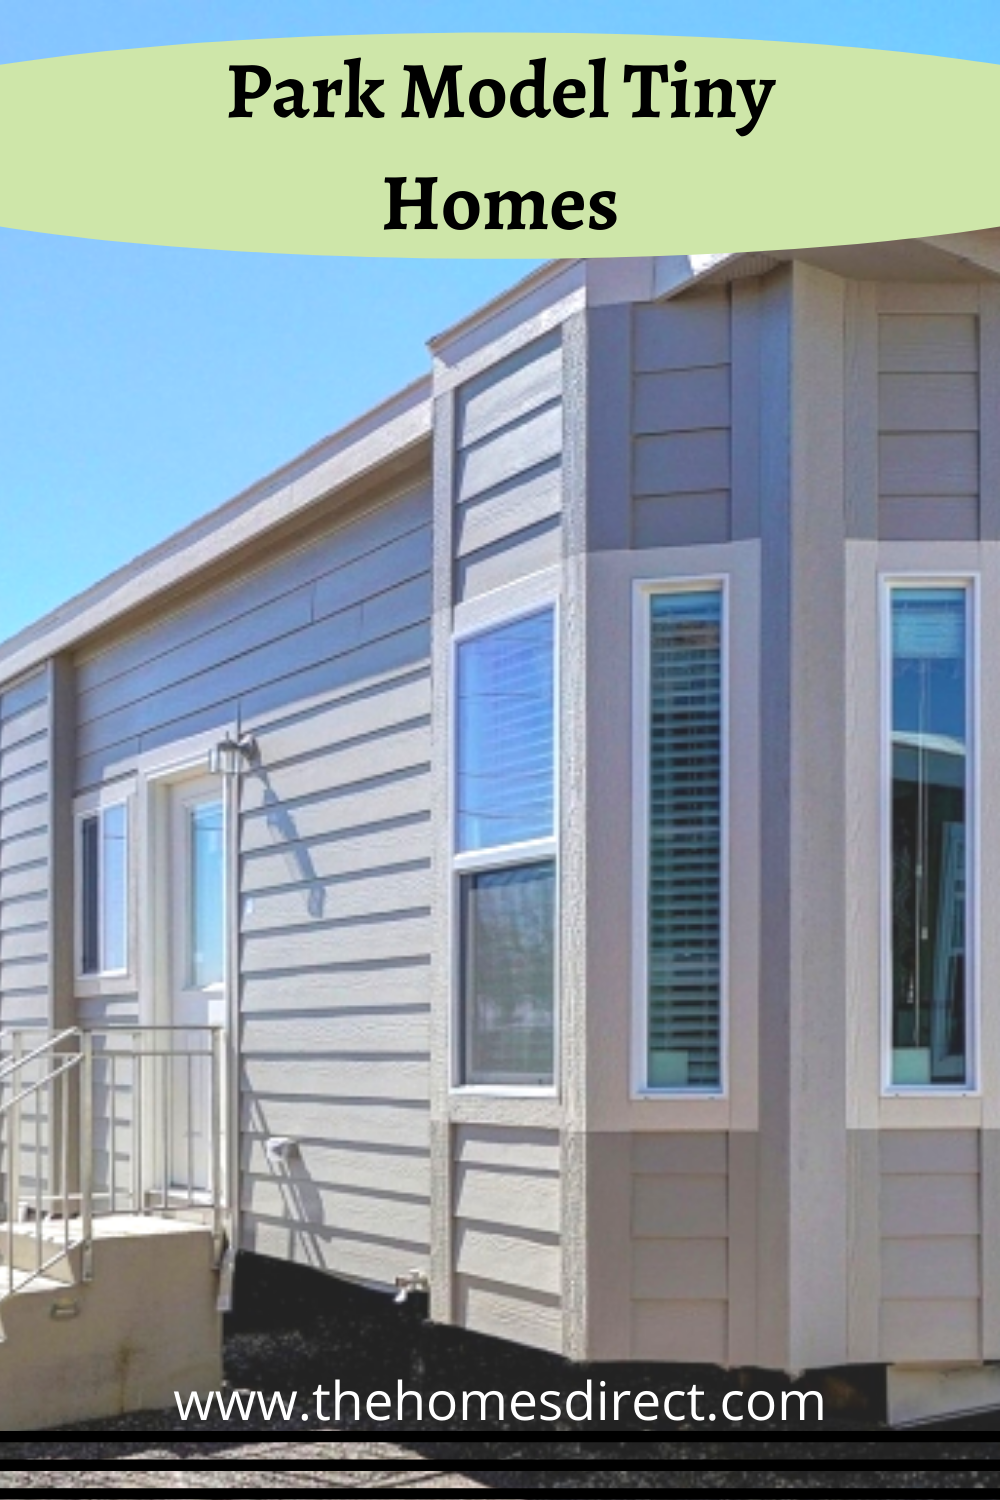 Pin On Park Model Tiny Homes For Sales